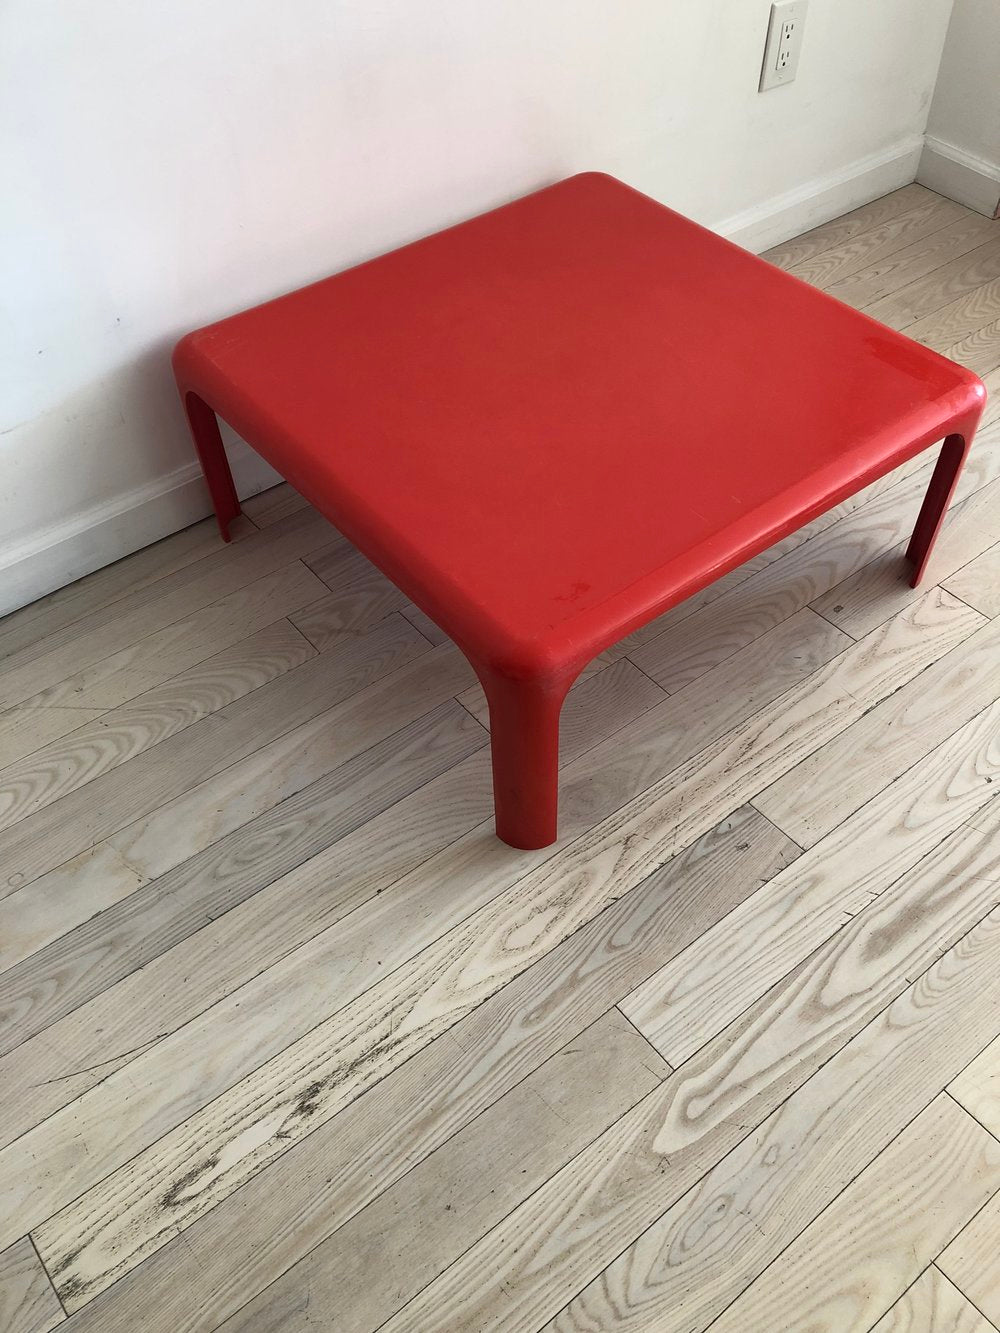 Vintage Red Plastic Italian Coffee Table by Vice Magistretti for Artemide